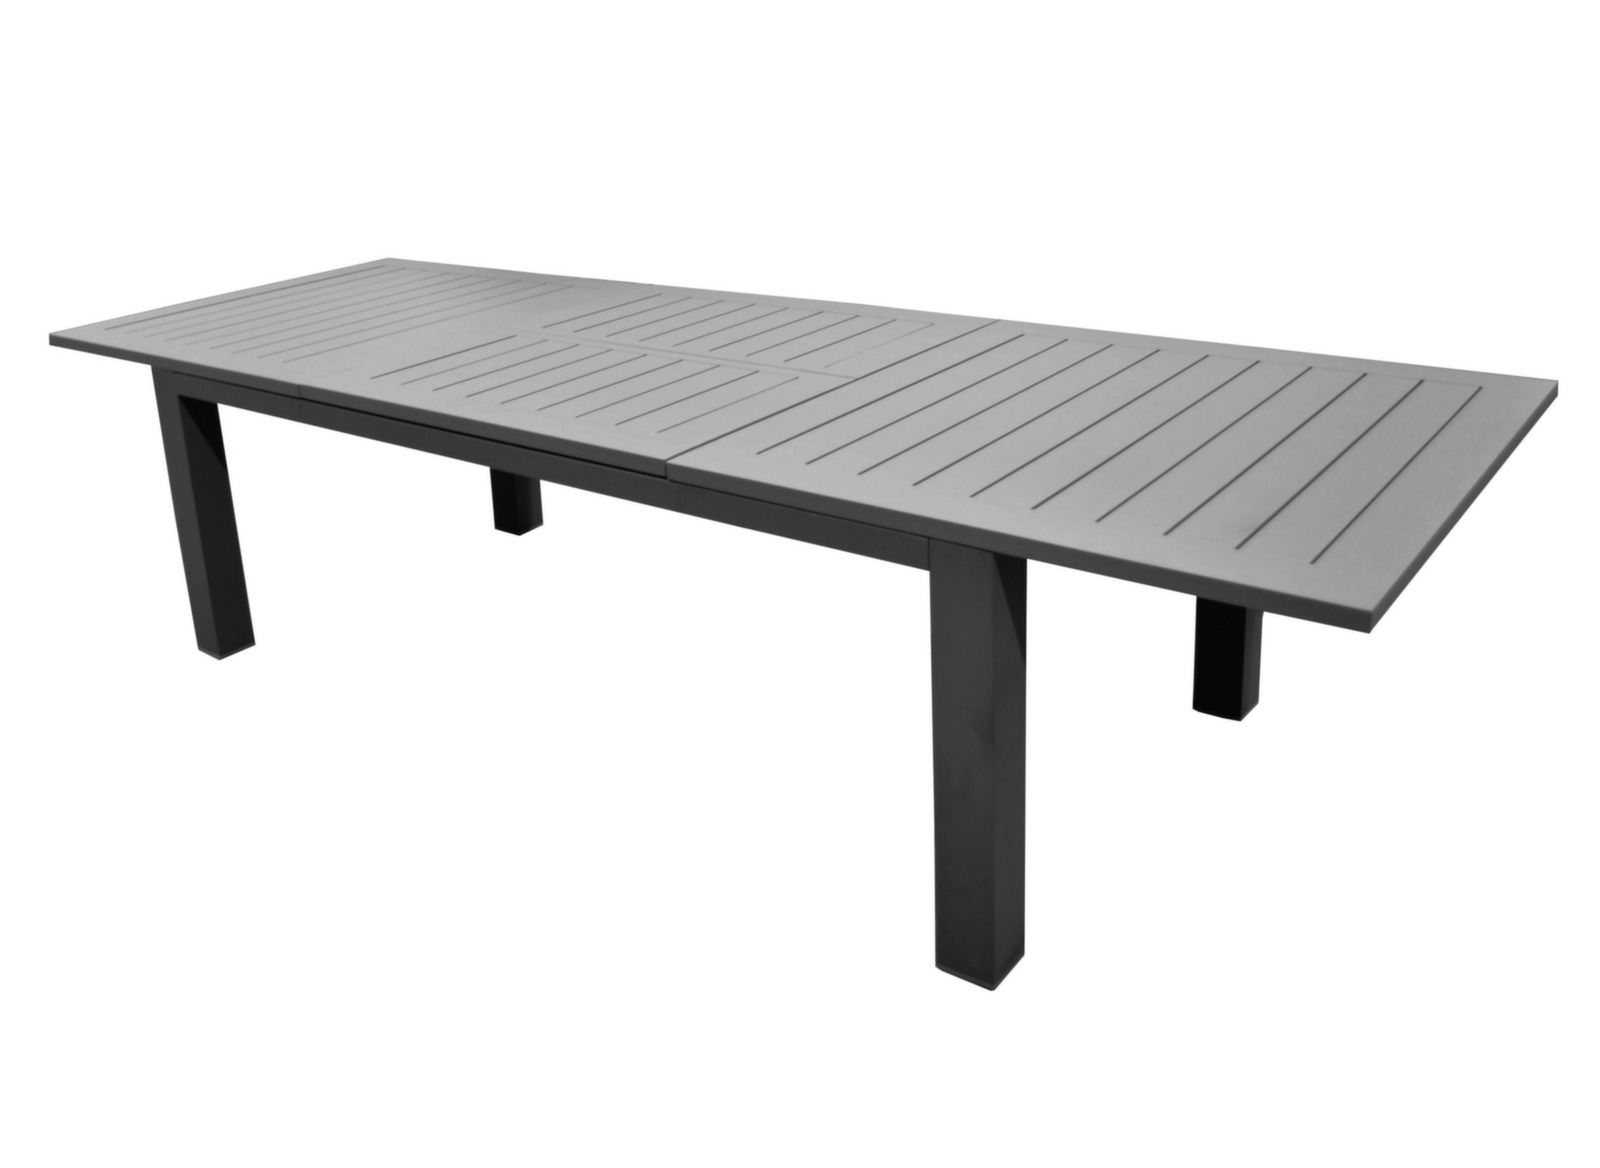 table de jardin aluminium 12 places aurore oc o proloisirs. Black Bedroom Furniture Sets. Home Design Ideas